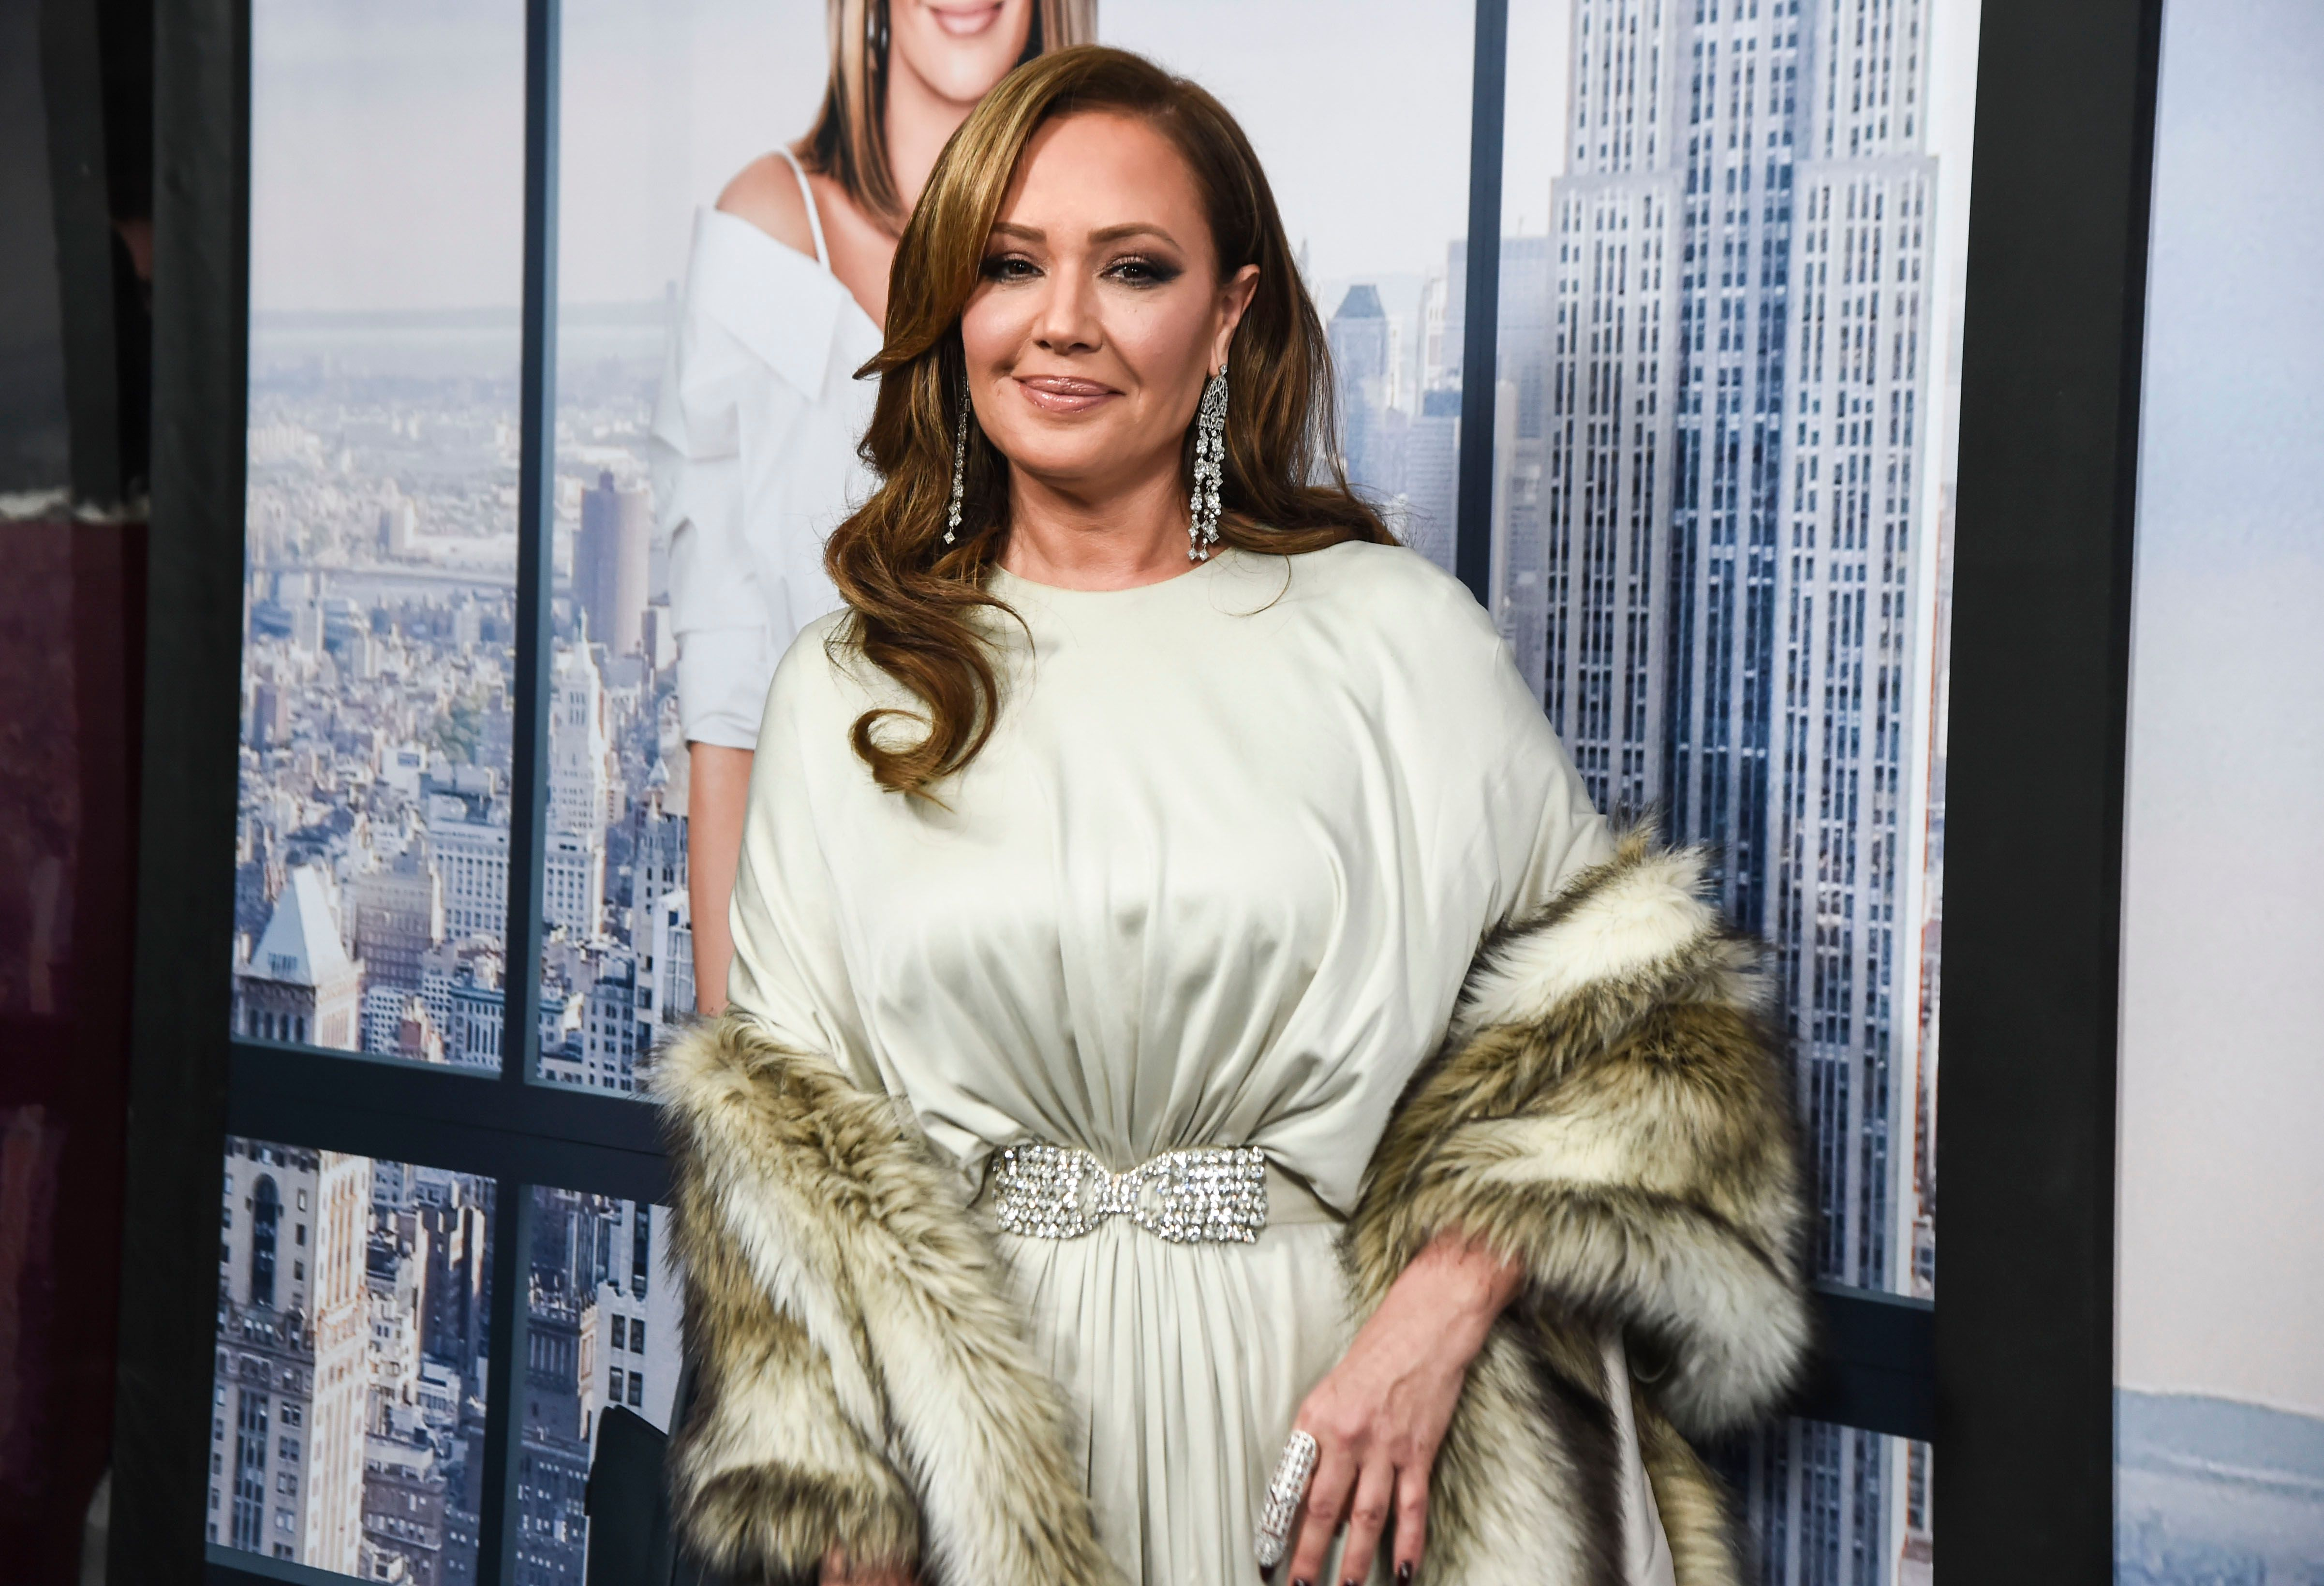 Leah Remini at the 'Second Act' World Premiere at Regal Union Square Theatre, Stadium 14 on December 12, 2018 in New York City | Photo: Getty Images